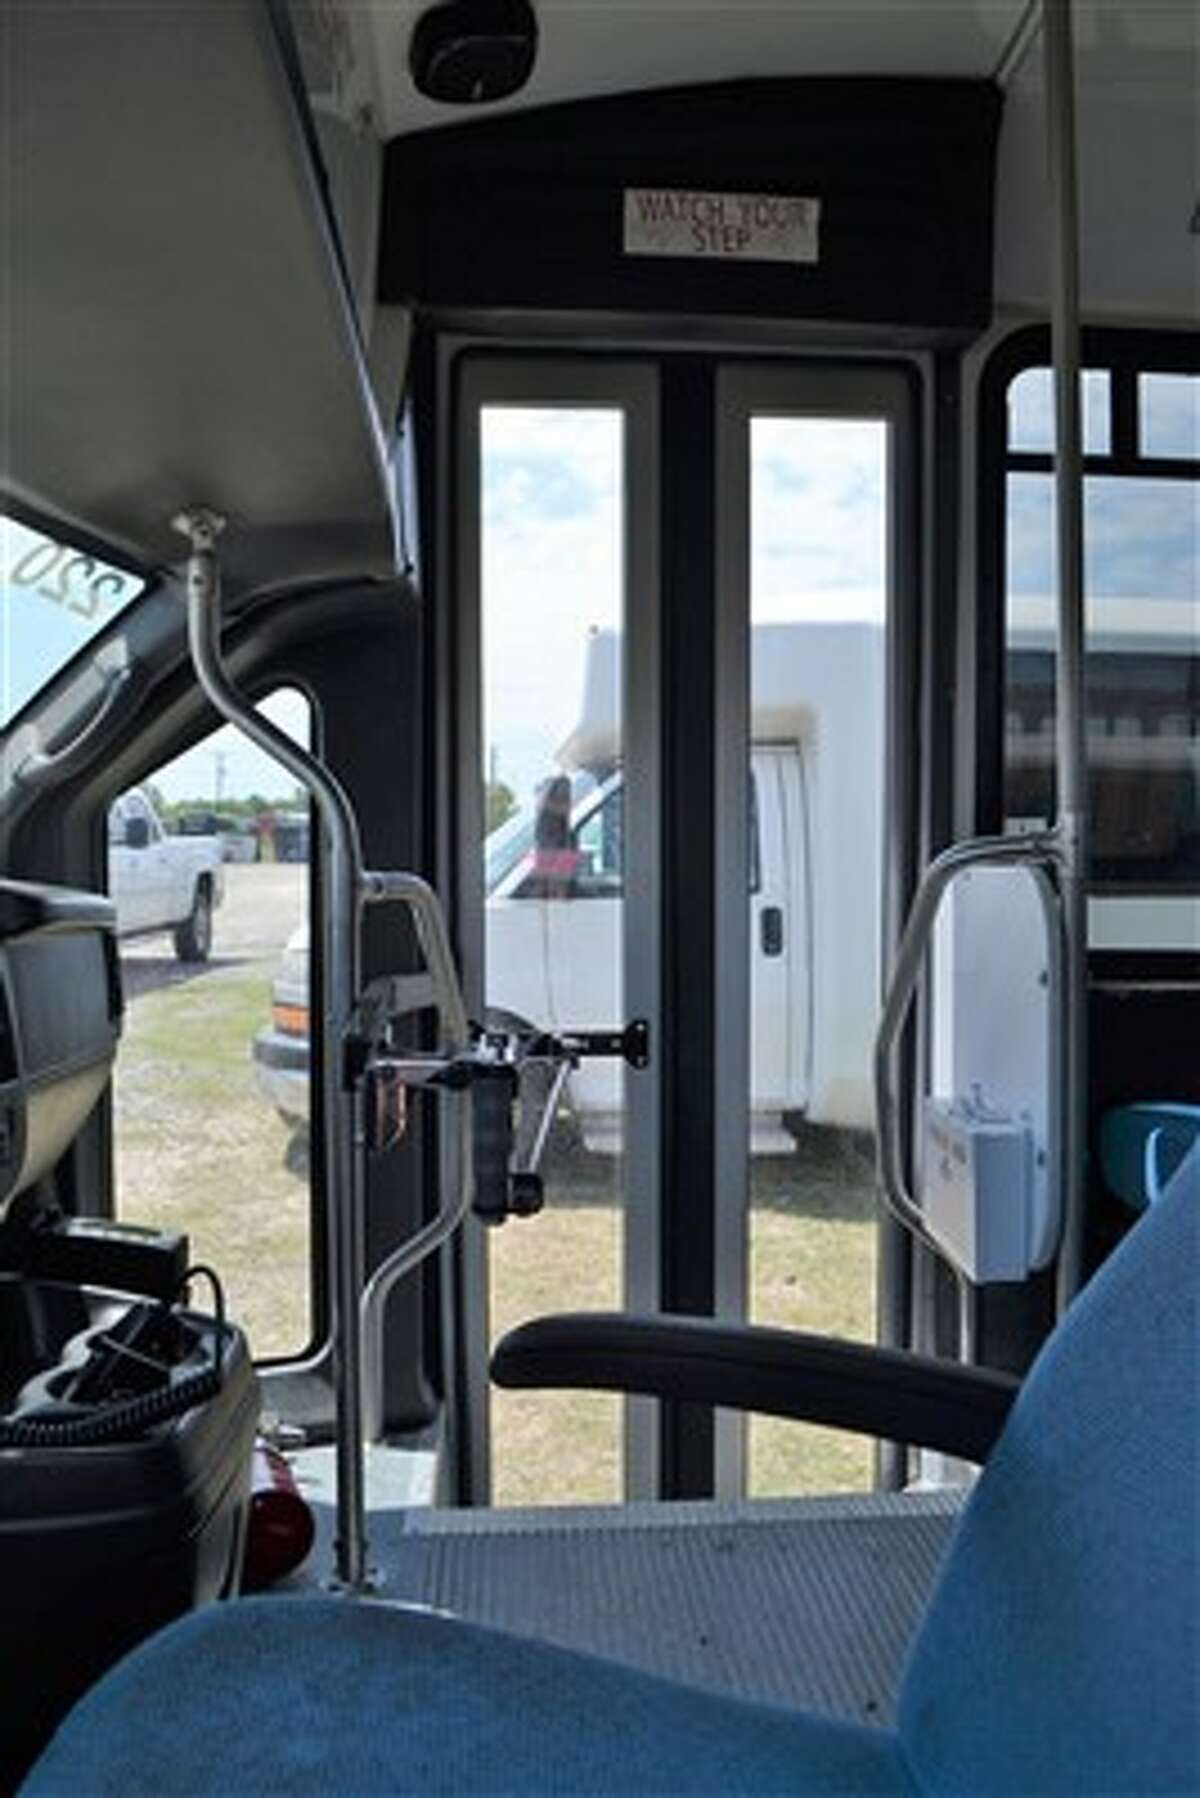 Former airport shuttle buses recently seized from a San Antonio company by Bexar County go on the auction block Wednesday, May 9, 2018. The opening price for each of the vehicles has been set at $1,000.